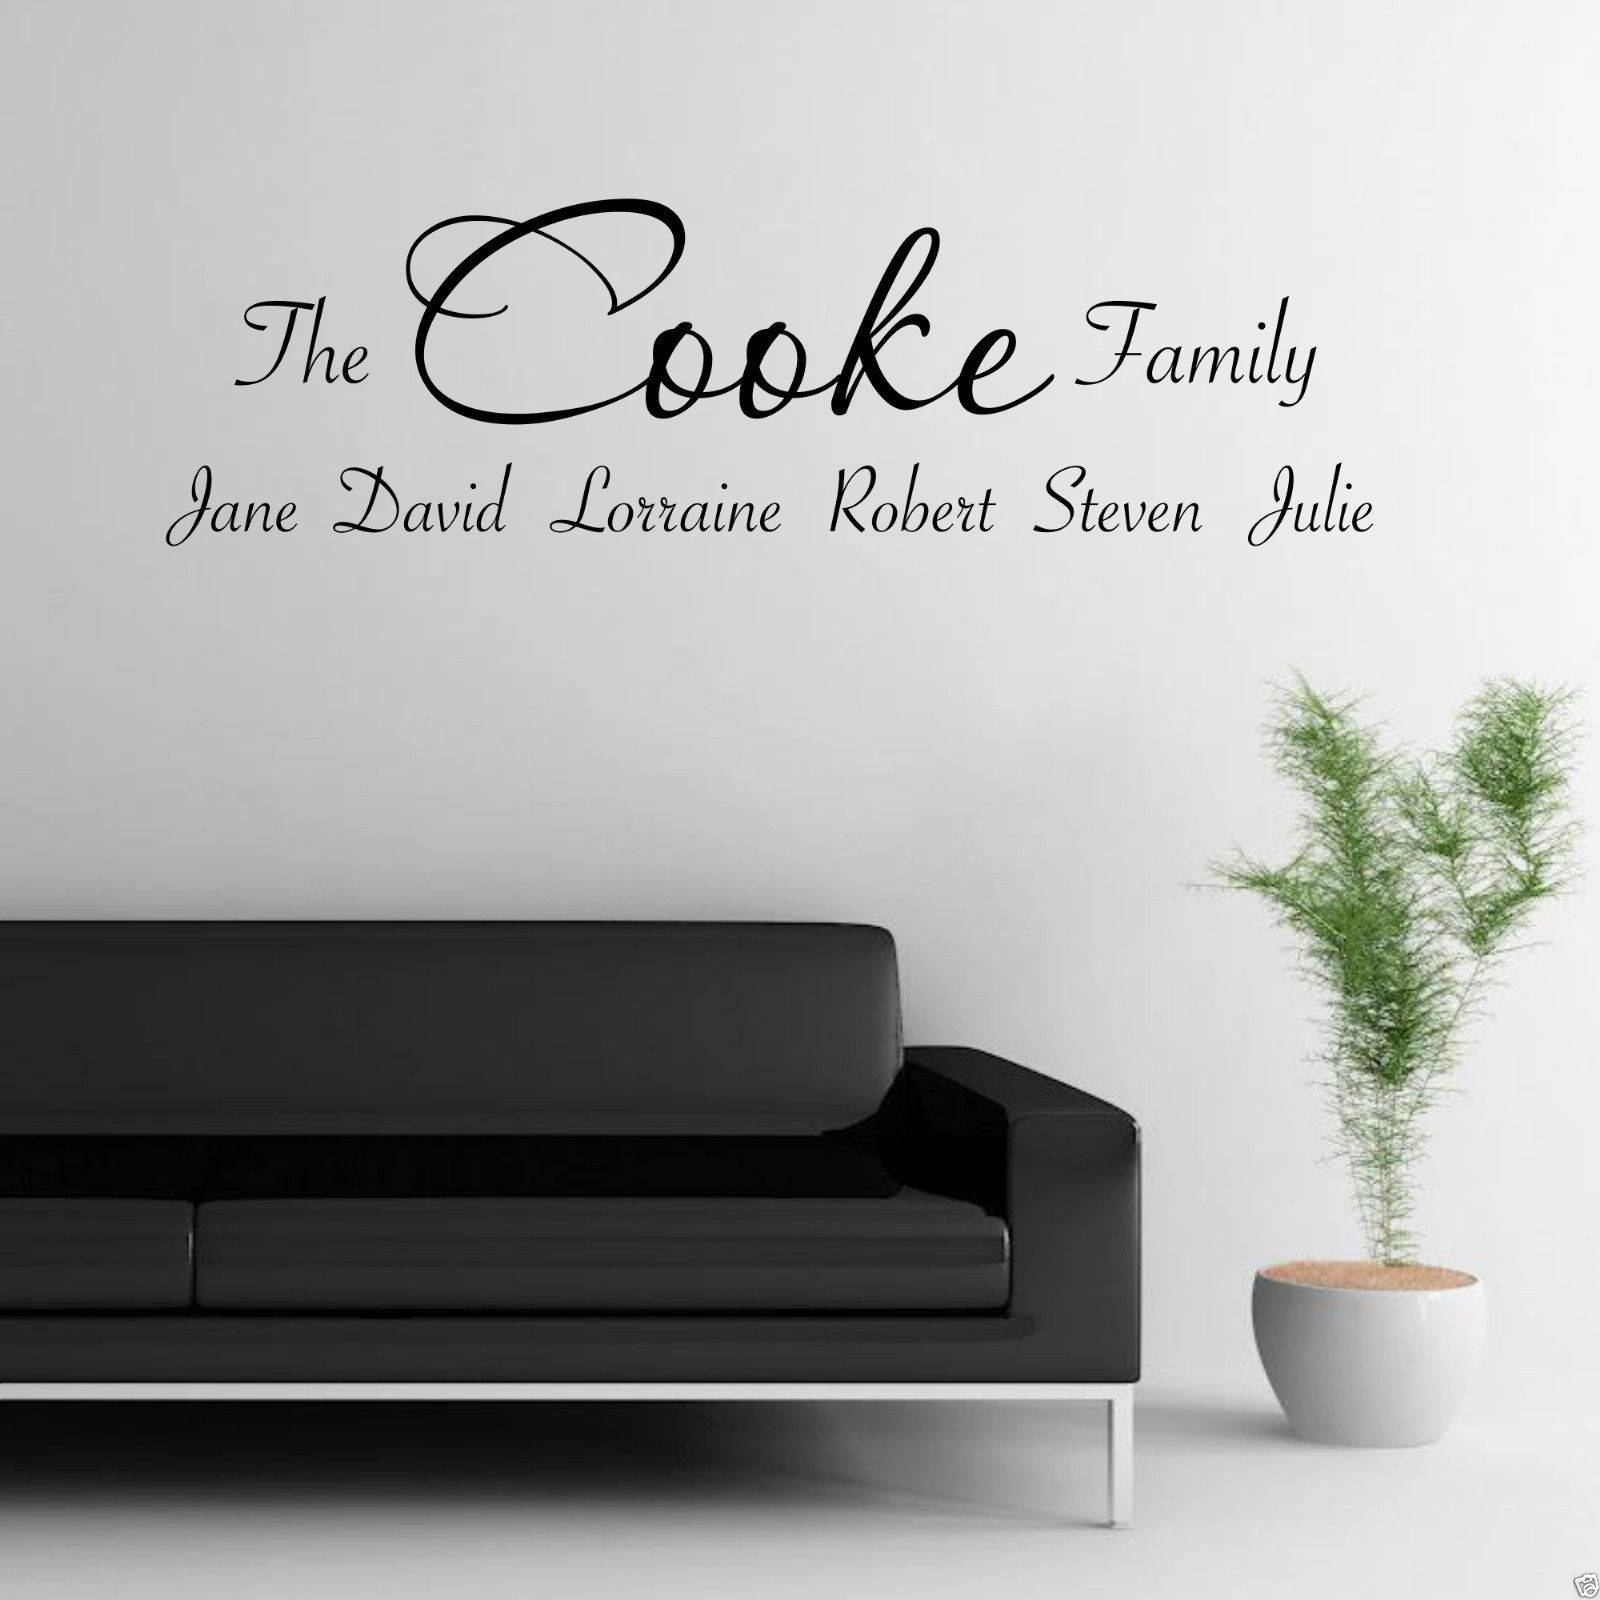 Personalised Family Wall Art Sticker Lounge Quote Decal Transfer Inside Newest Personalized Family Wall Art (View 10 of 20)